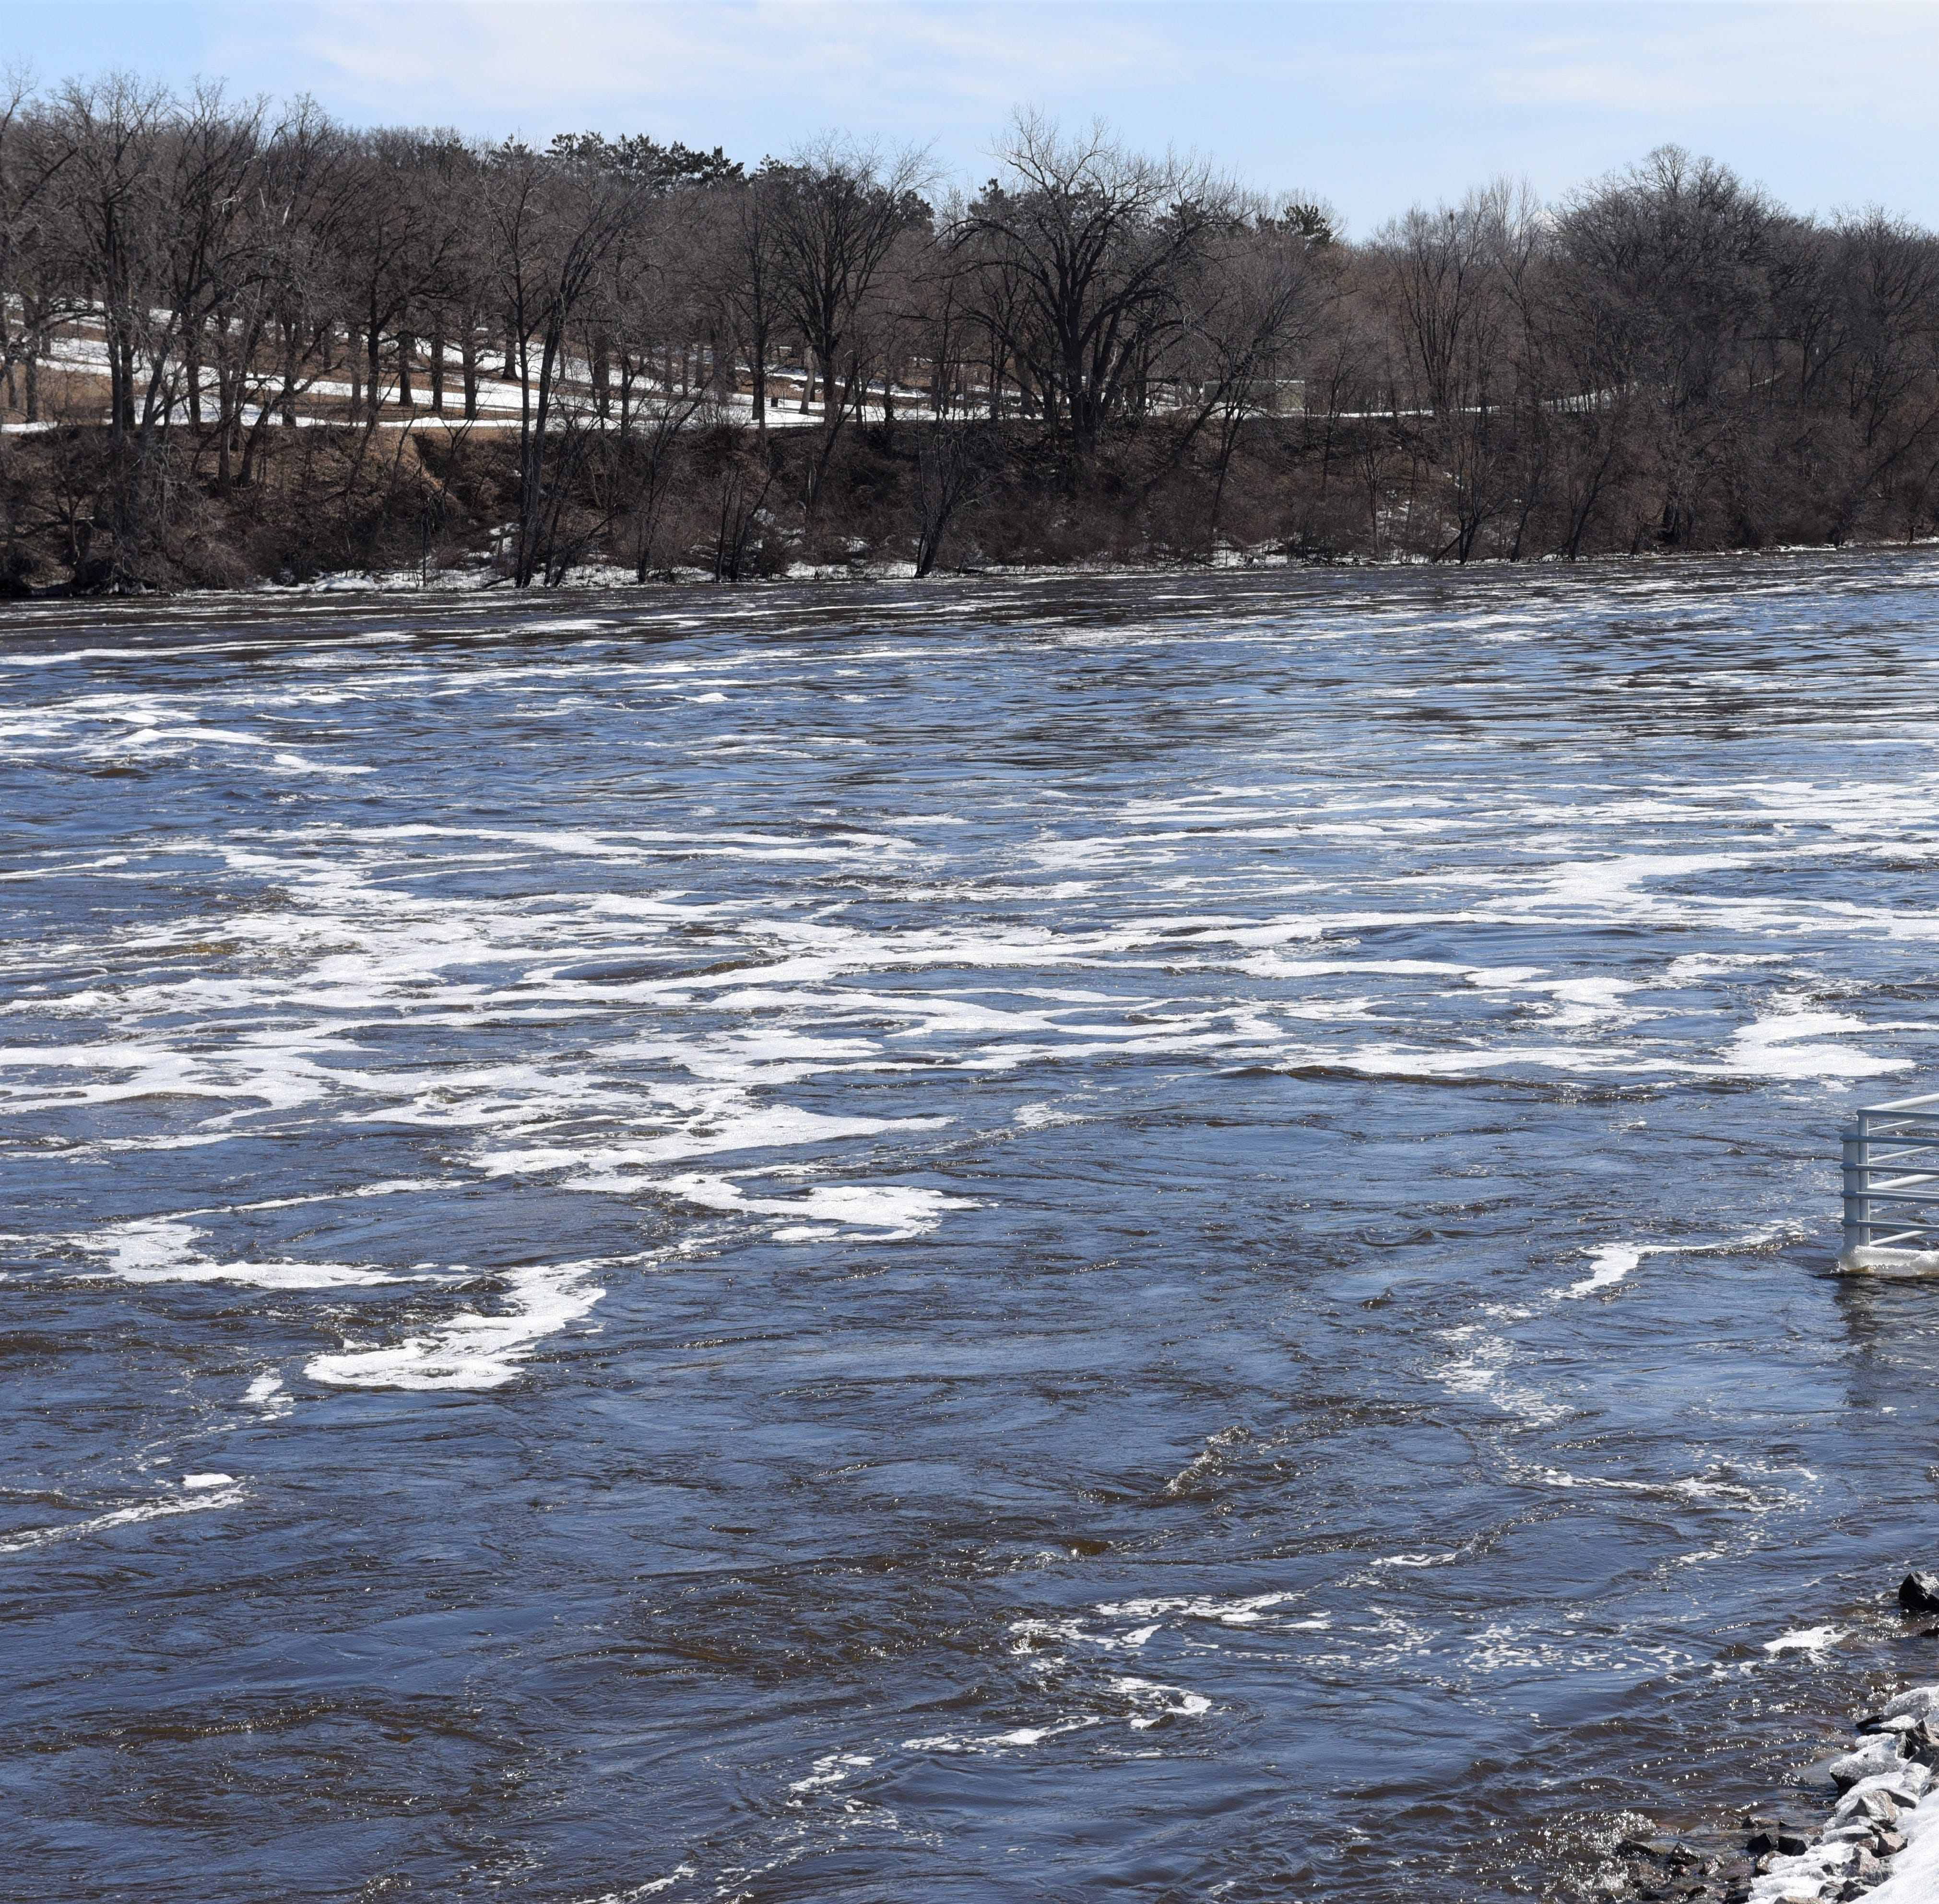 Flood warning issued for Mississippi River at St. Cloud